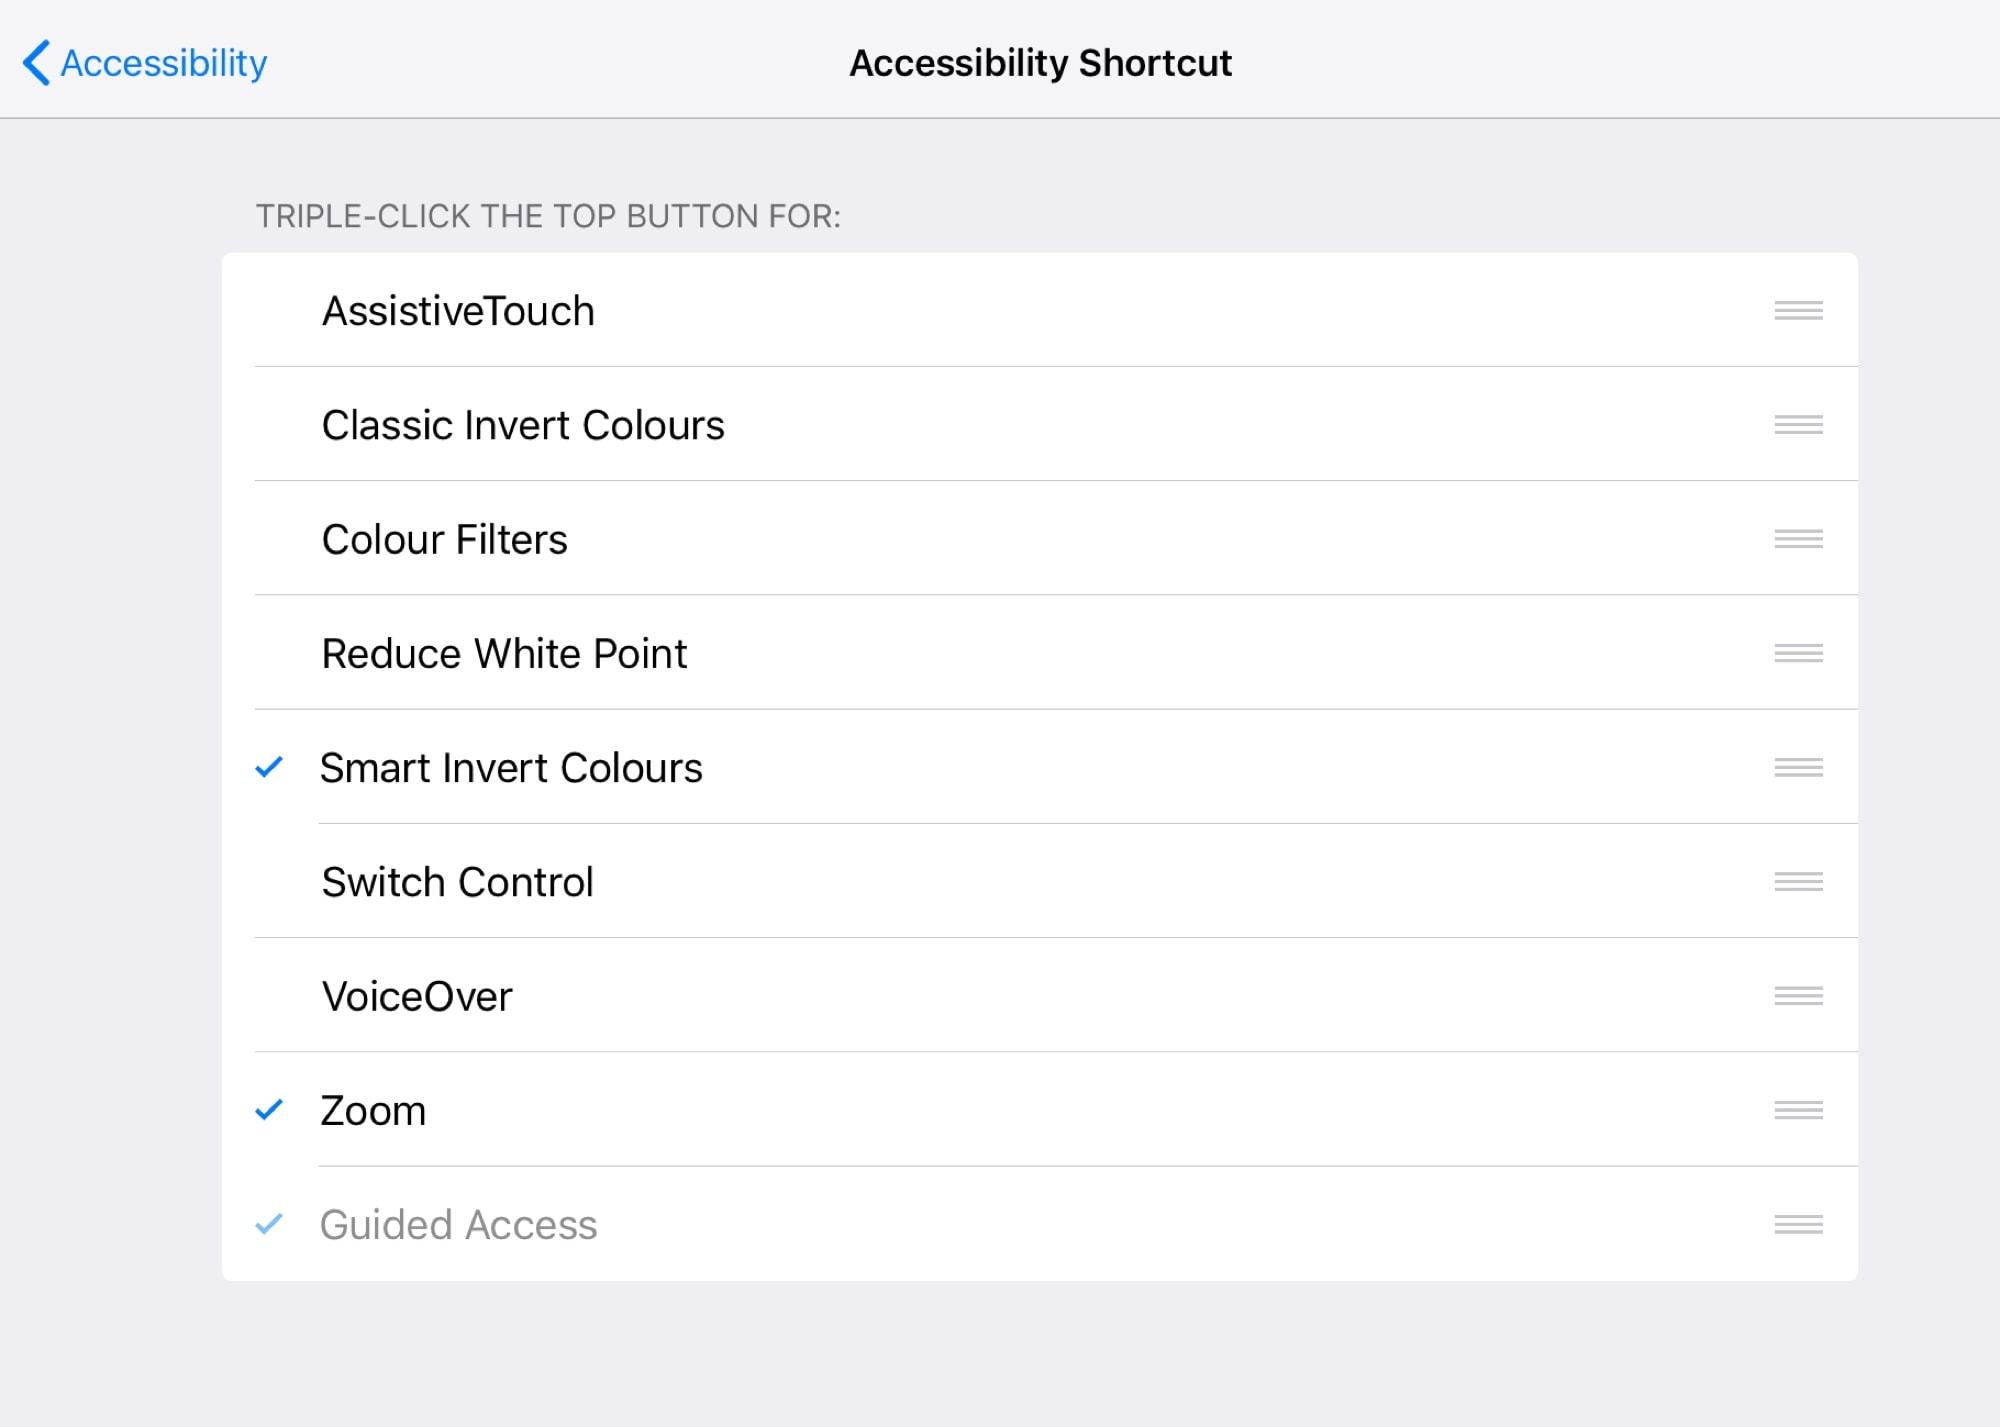 Your accessibility shortcuts.